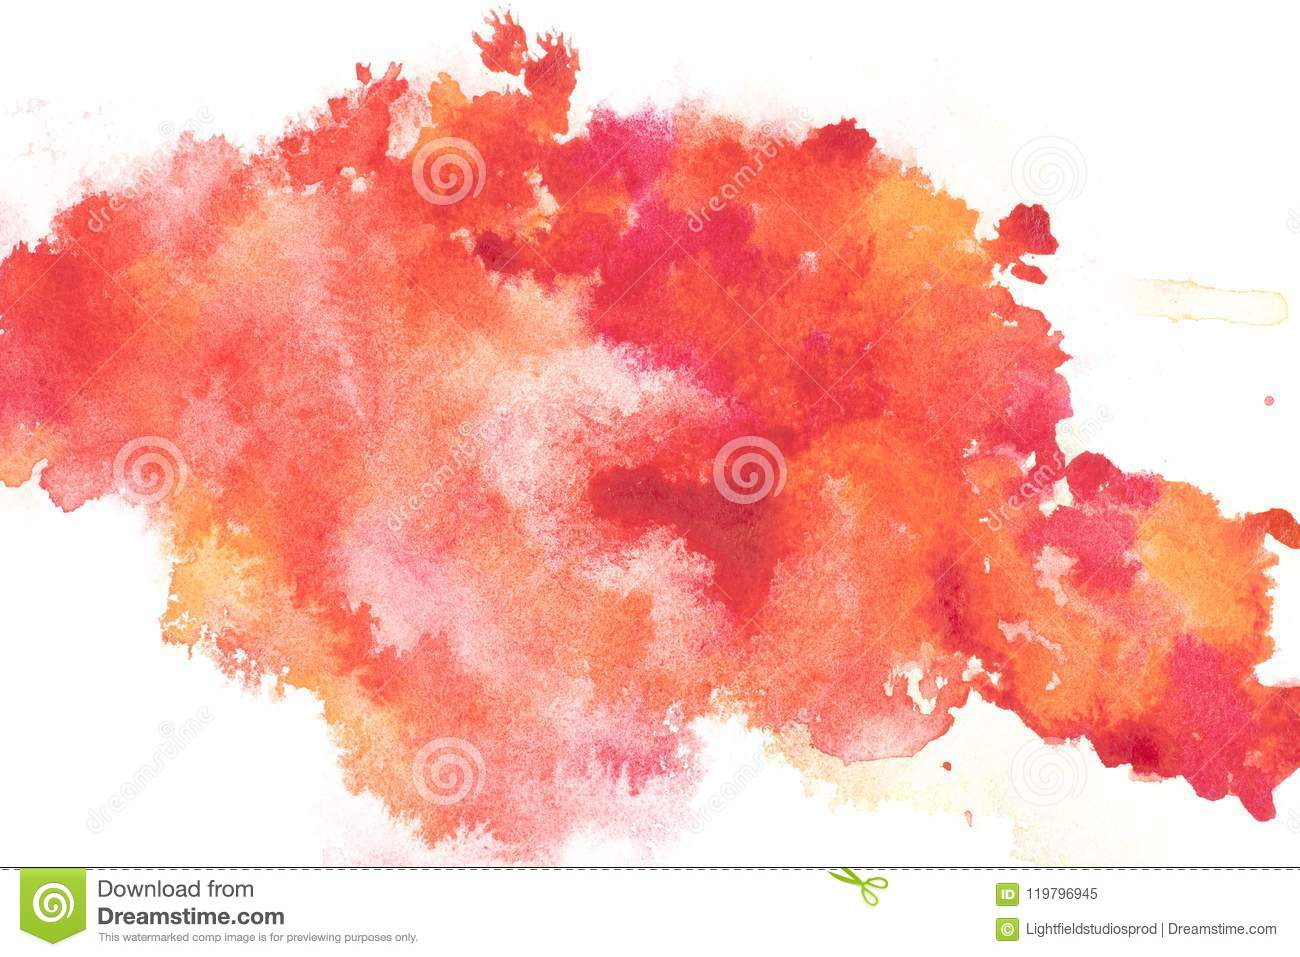 Abstract painting with bright red and orange paint blots